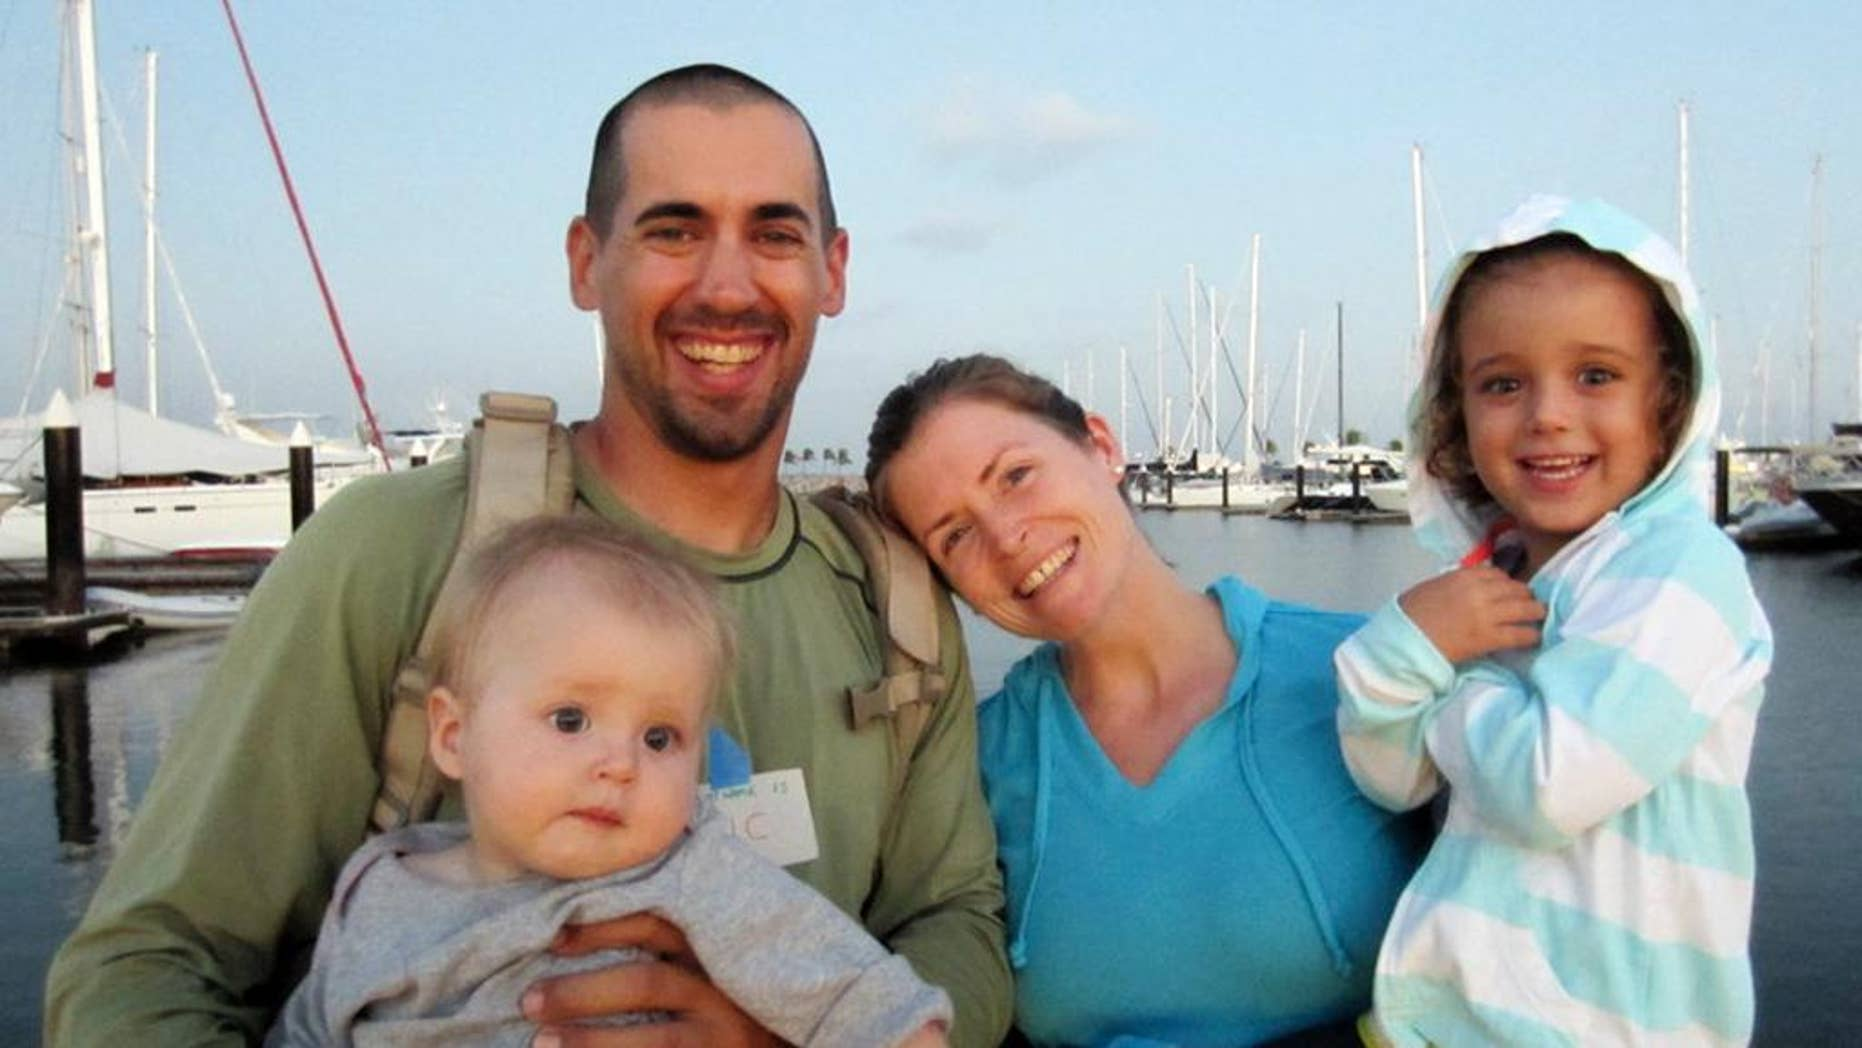 This undated image provided by Sariah English shows Eric and Charlotte Kaufman with their daughters, Lyra, 1, and Cora, 3. Rescuers have stabilized the condition Lyra, with her family on a crippled sailboat hundreds of miles off the coast of Mexico, and a U.S. Navy warship was headed toward the vessel, officials said Friday night, April 4, 2014. Their boat, the 36-foot Rebel Heart, was about 900 nautical miles southwest of Cabo San Lucas when they sent a satellite call for help to the U.S. Coast Guard Thursday morning saying their 1-year-old girl aboard was ill. (AP Photo/Sariah English)